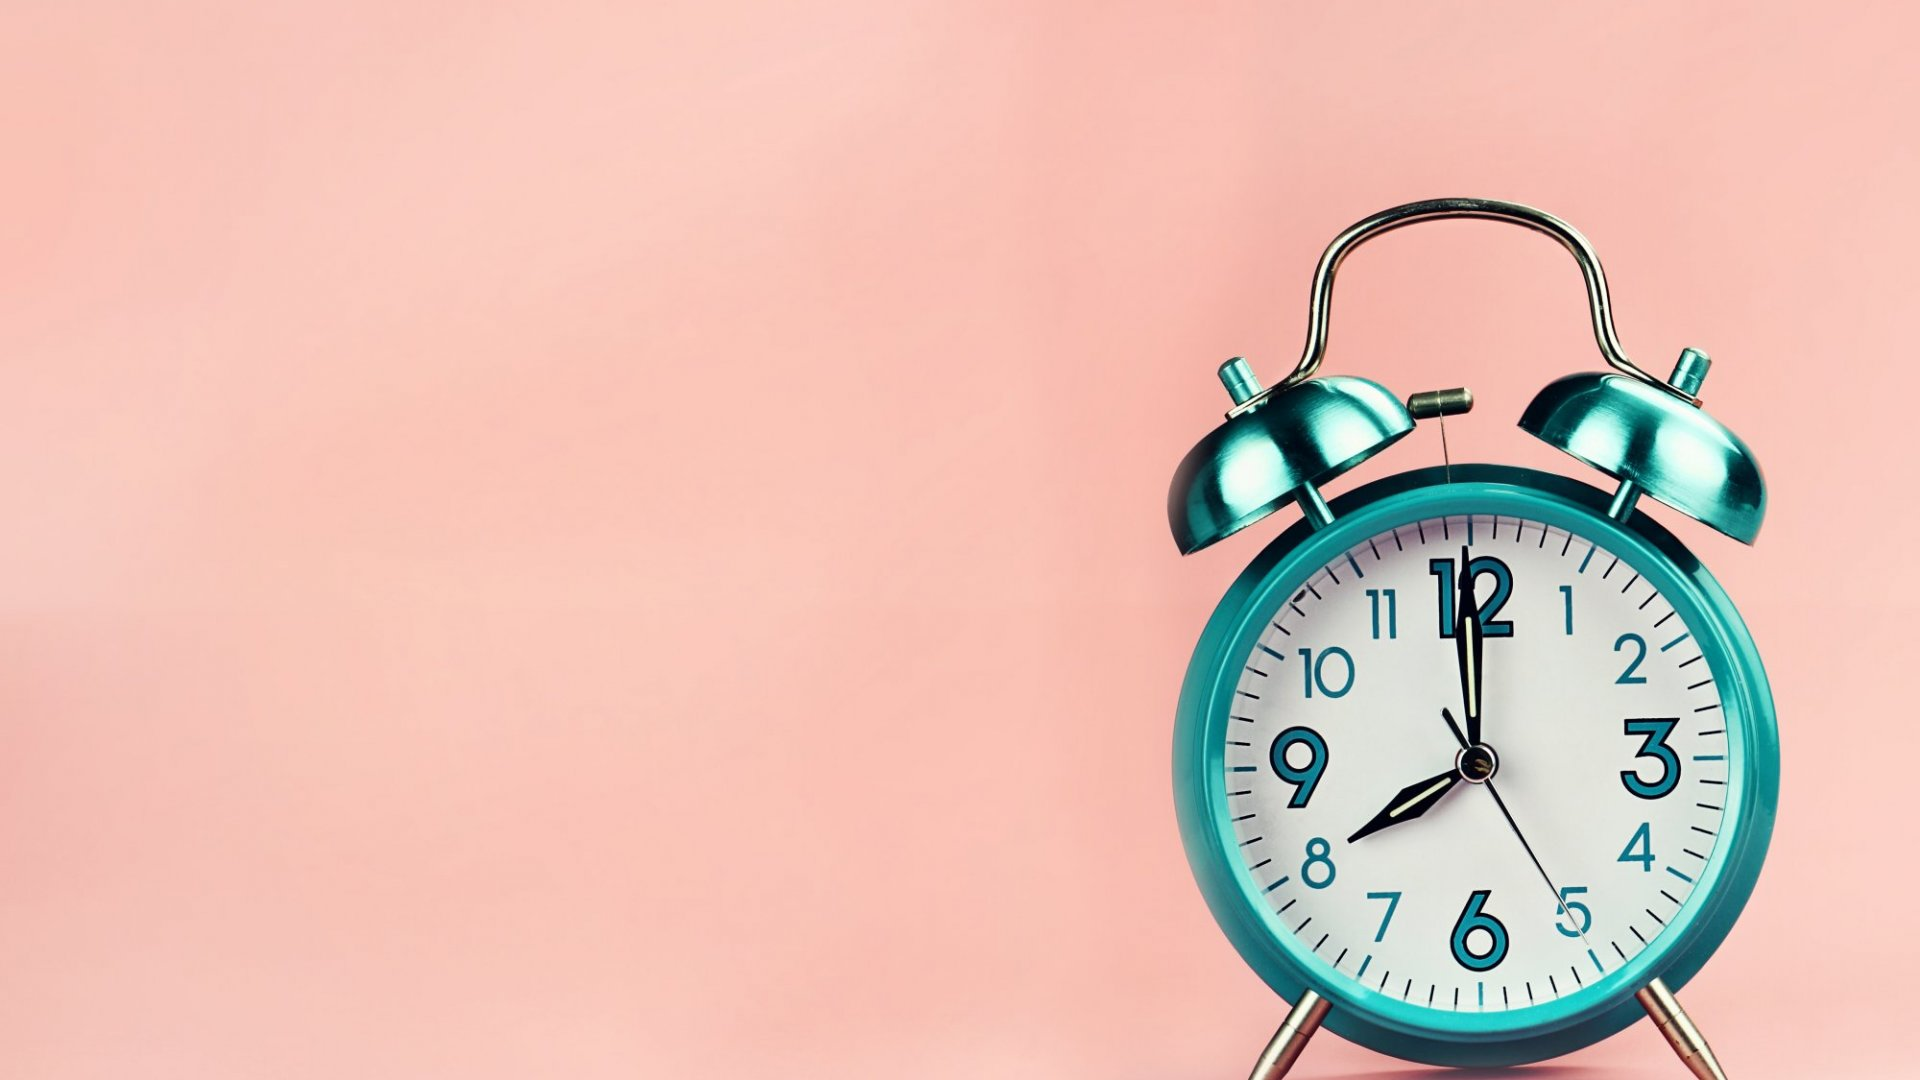 It's Official: Turning the Clocks Back Is a Very Stupid Idea Based on a 100-Year-Old Mistake. (So Why Are We Still Doing It?)